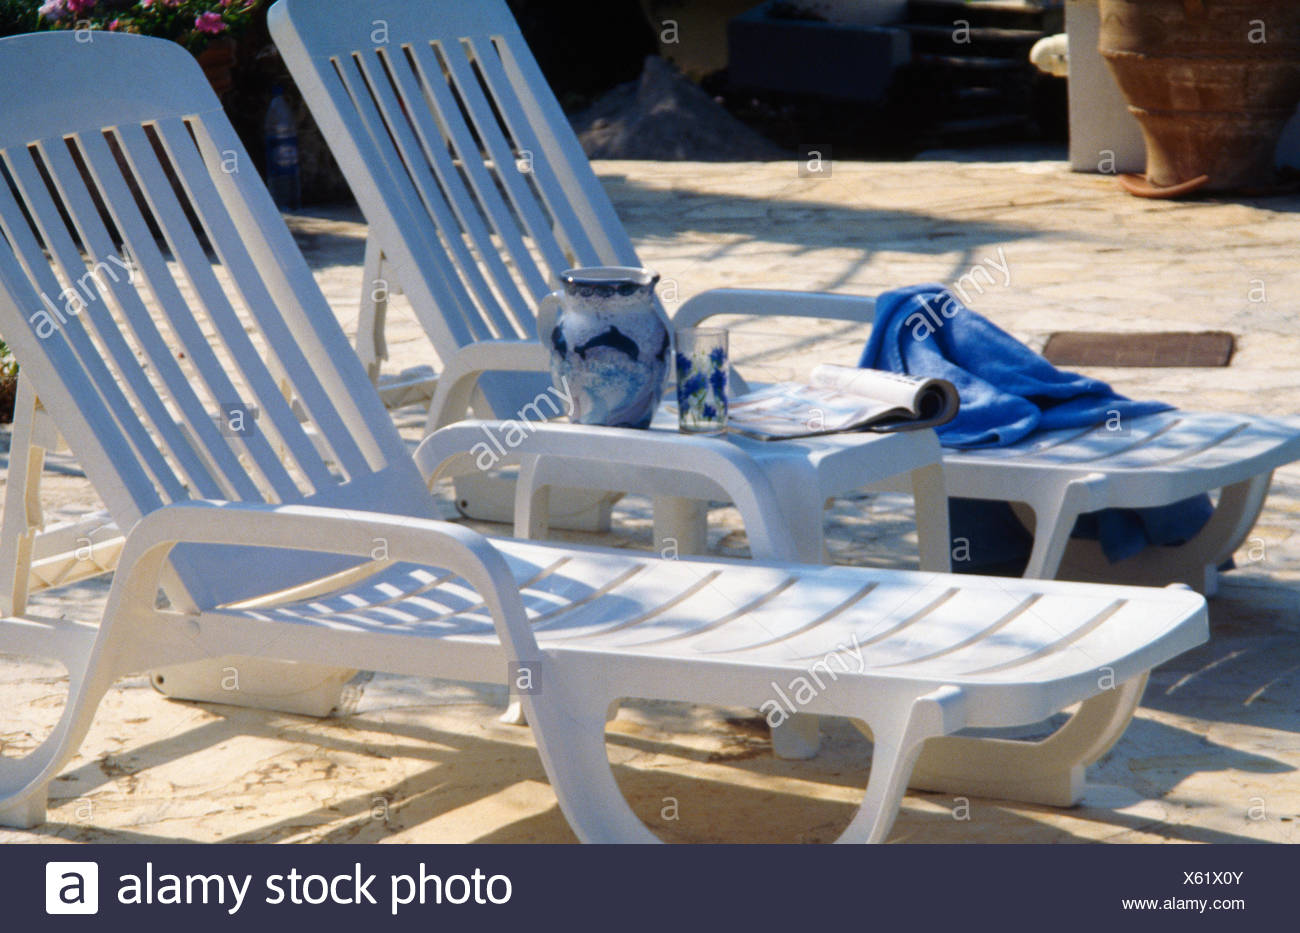 White plastic loungers on paved patio - Stock Image